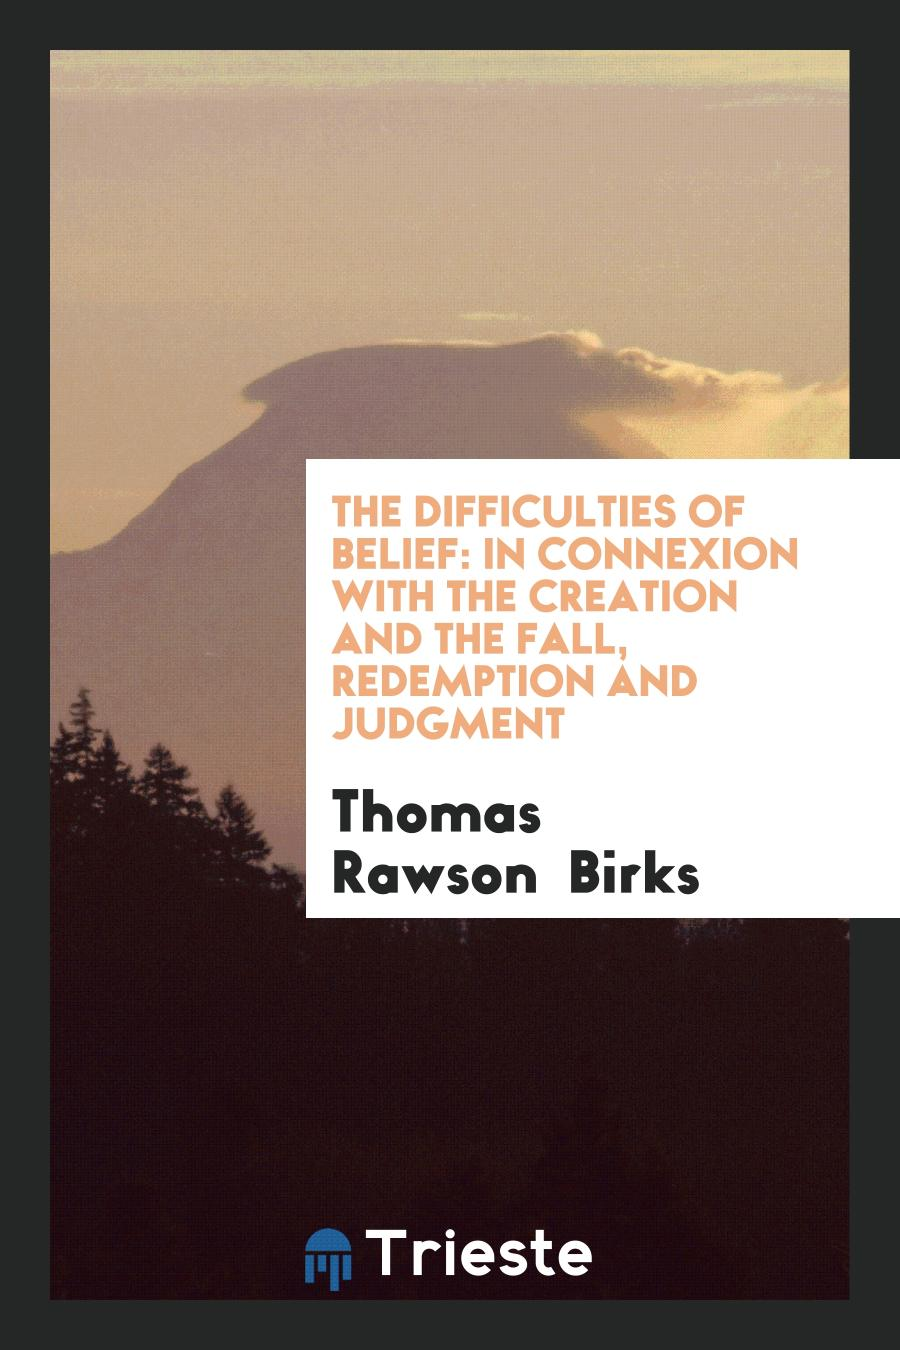 The Difficulties of Belief: In Connexion with the Creation and the Fall, Redemption and Judgment